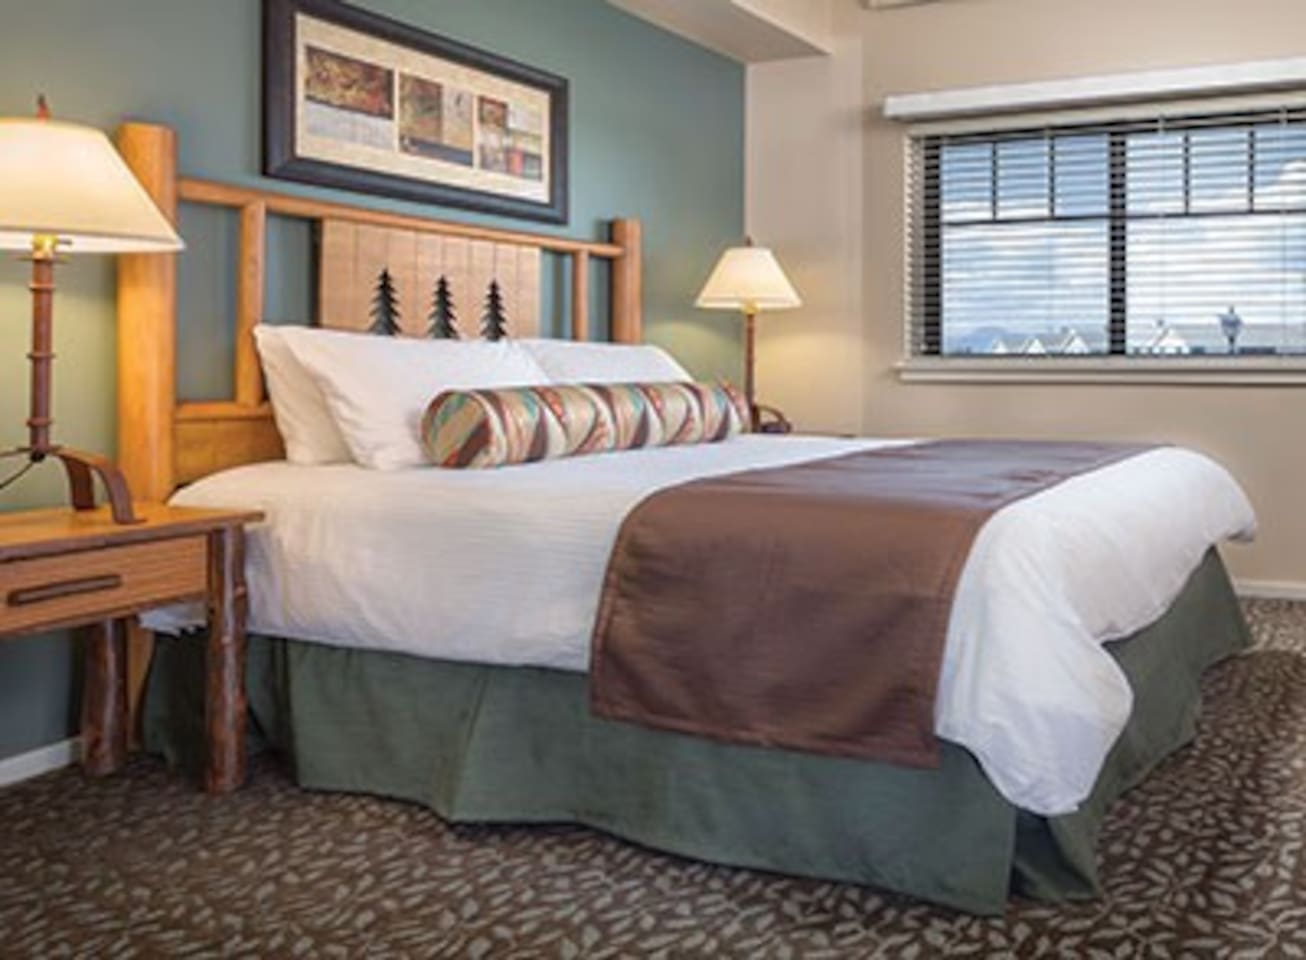 Yellowstone Gorgeous 1BDR K + Q murphy bed for 4 - Condominiums for Rent in  West Yellowstone, Montana, United States